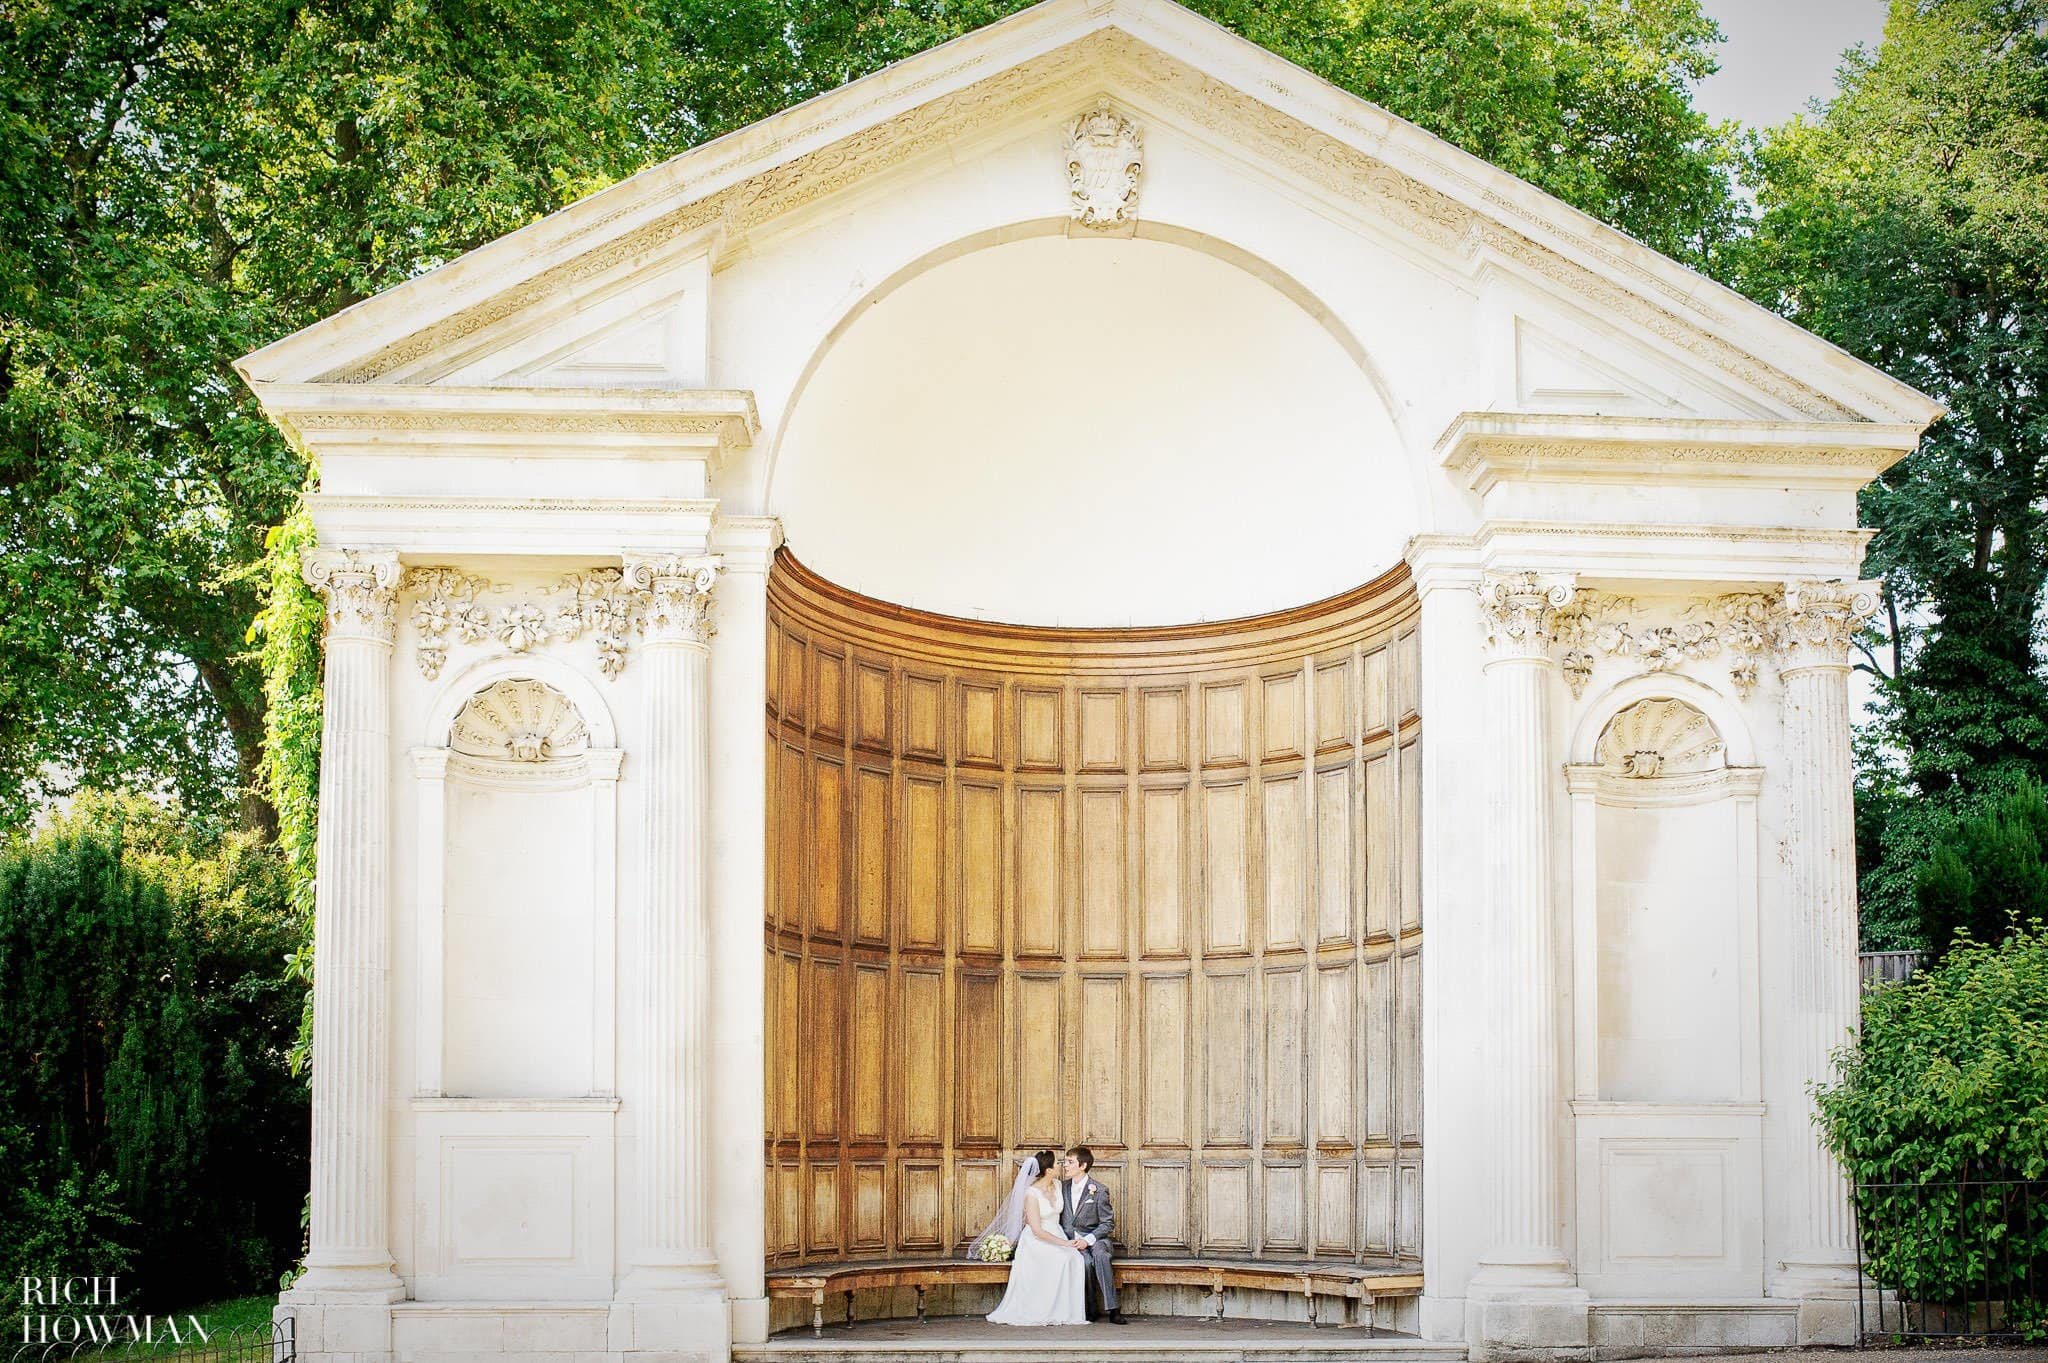 Notting Hill Wedding | Wedding Photographer London - Rich Howman 34